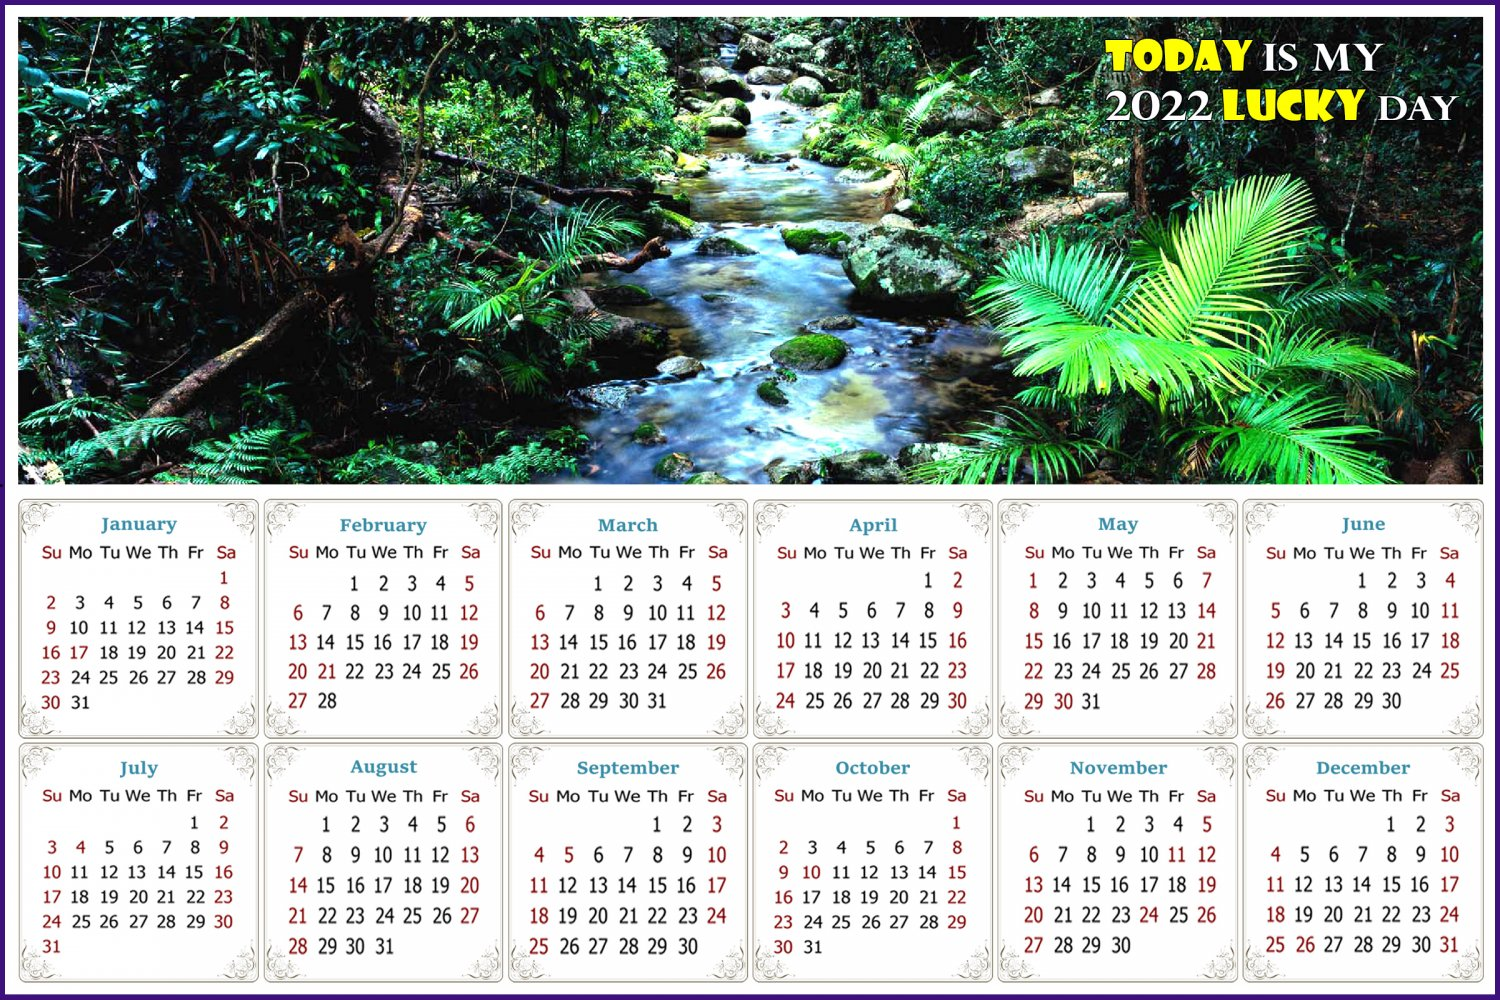 2022 Magnetic Calendar - Today is My Lucky Day - (Daintree National Park)